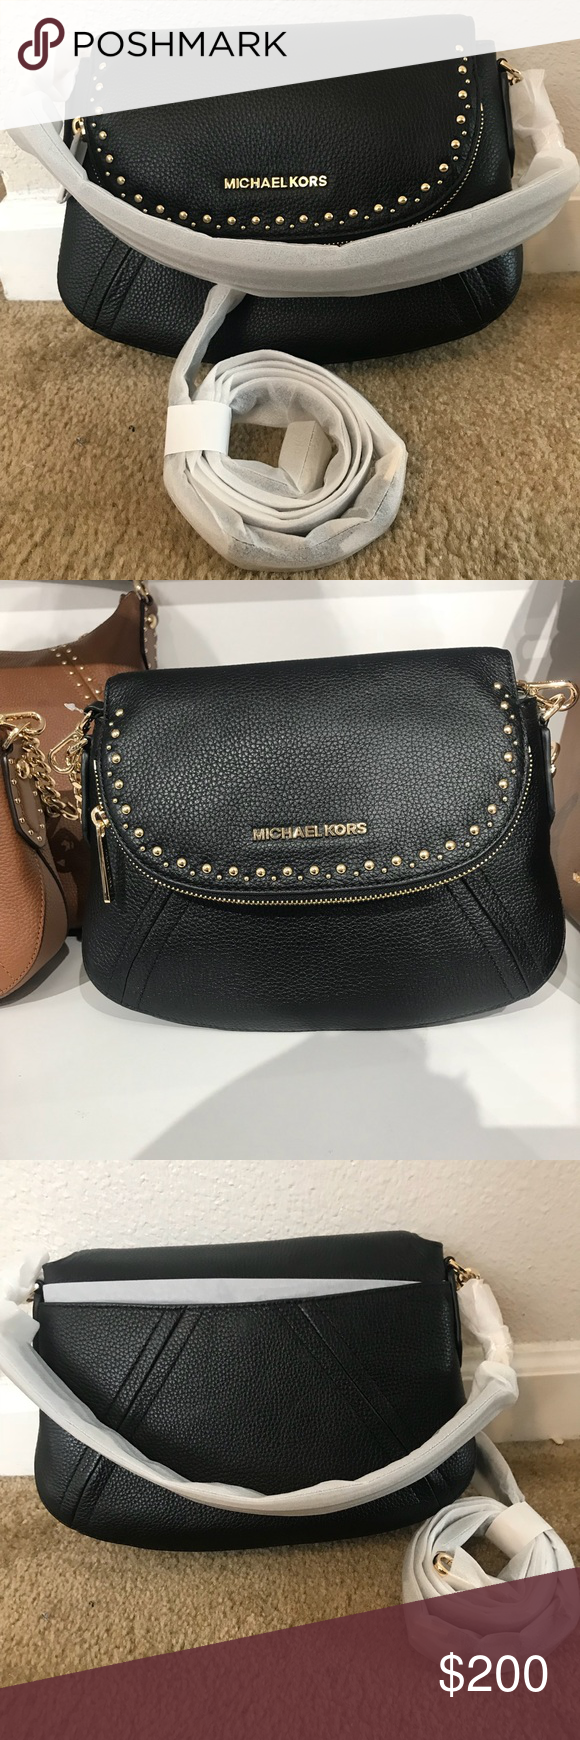 82fd495c8b76 Michael Kors Aria Studded Shoulder Bag/Crossbody AUTHENTIC Michael Kors Aria  Medium Convertible Studded Shoulder